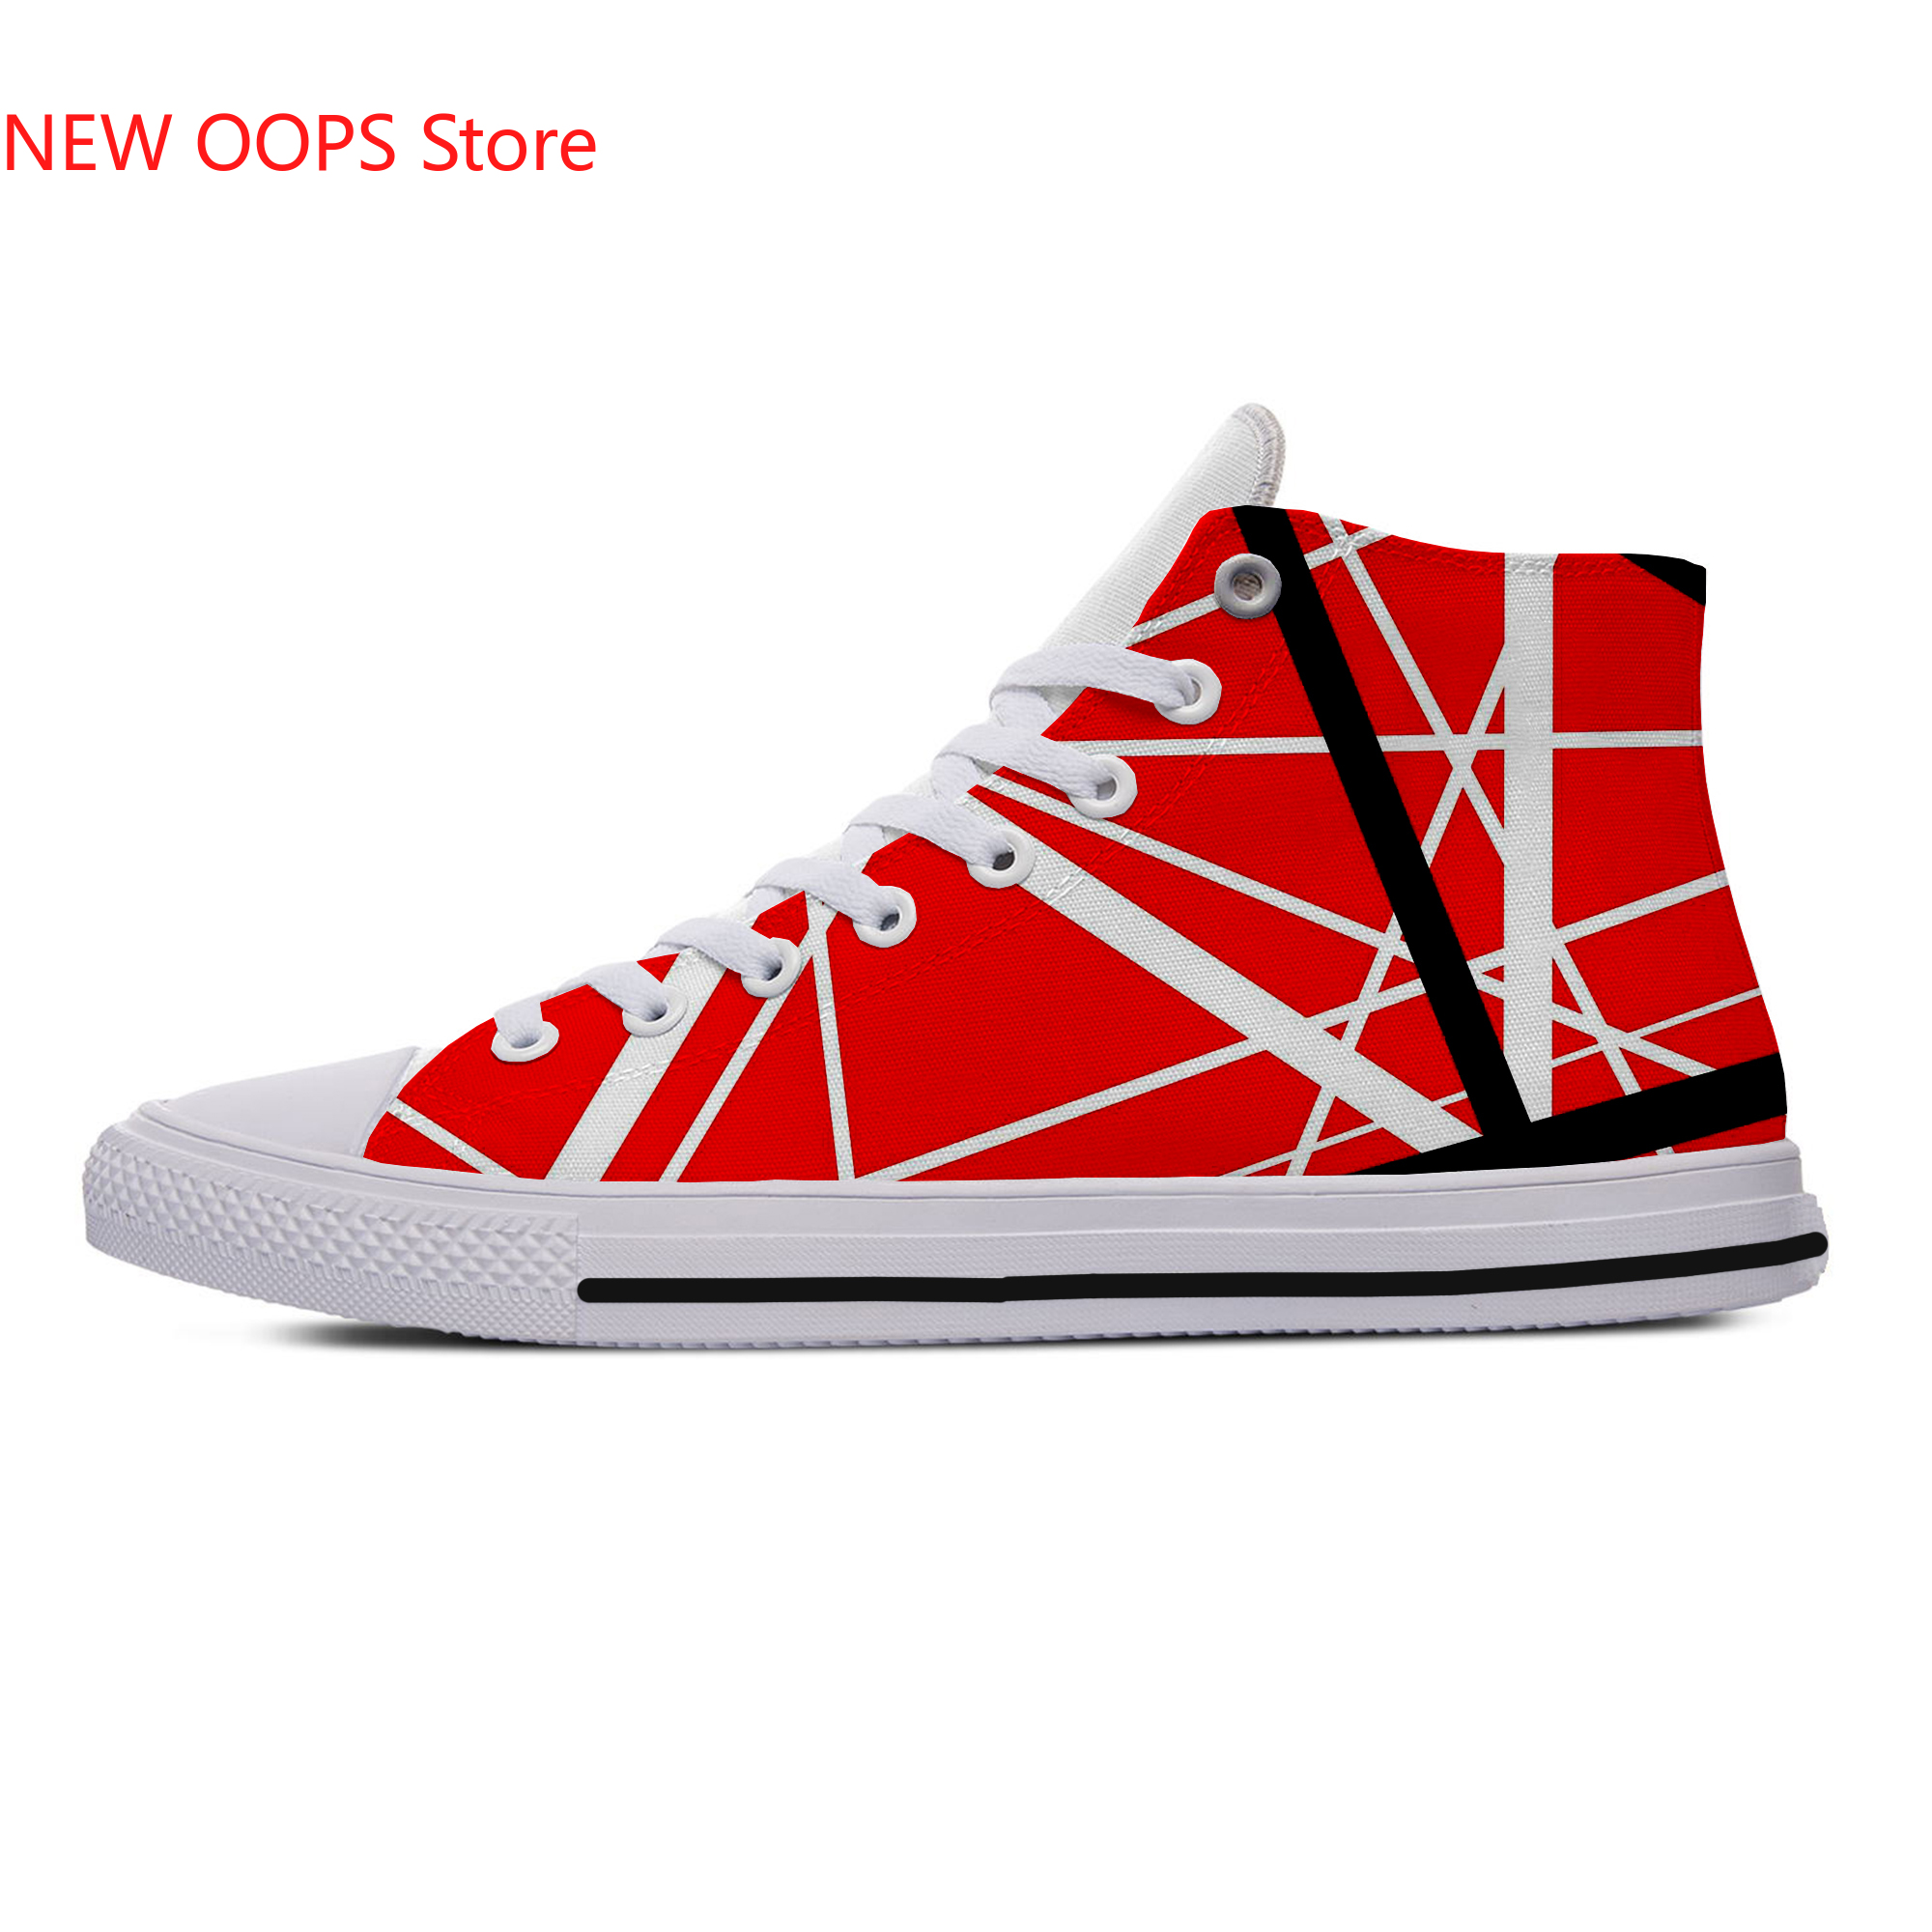 EVH High-Top Canvas Shoes